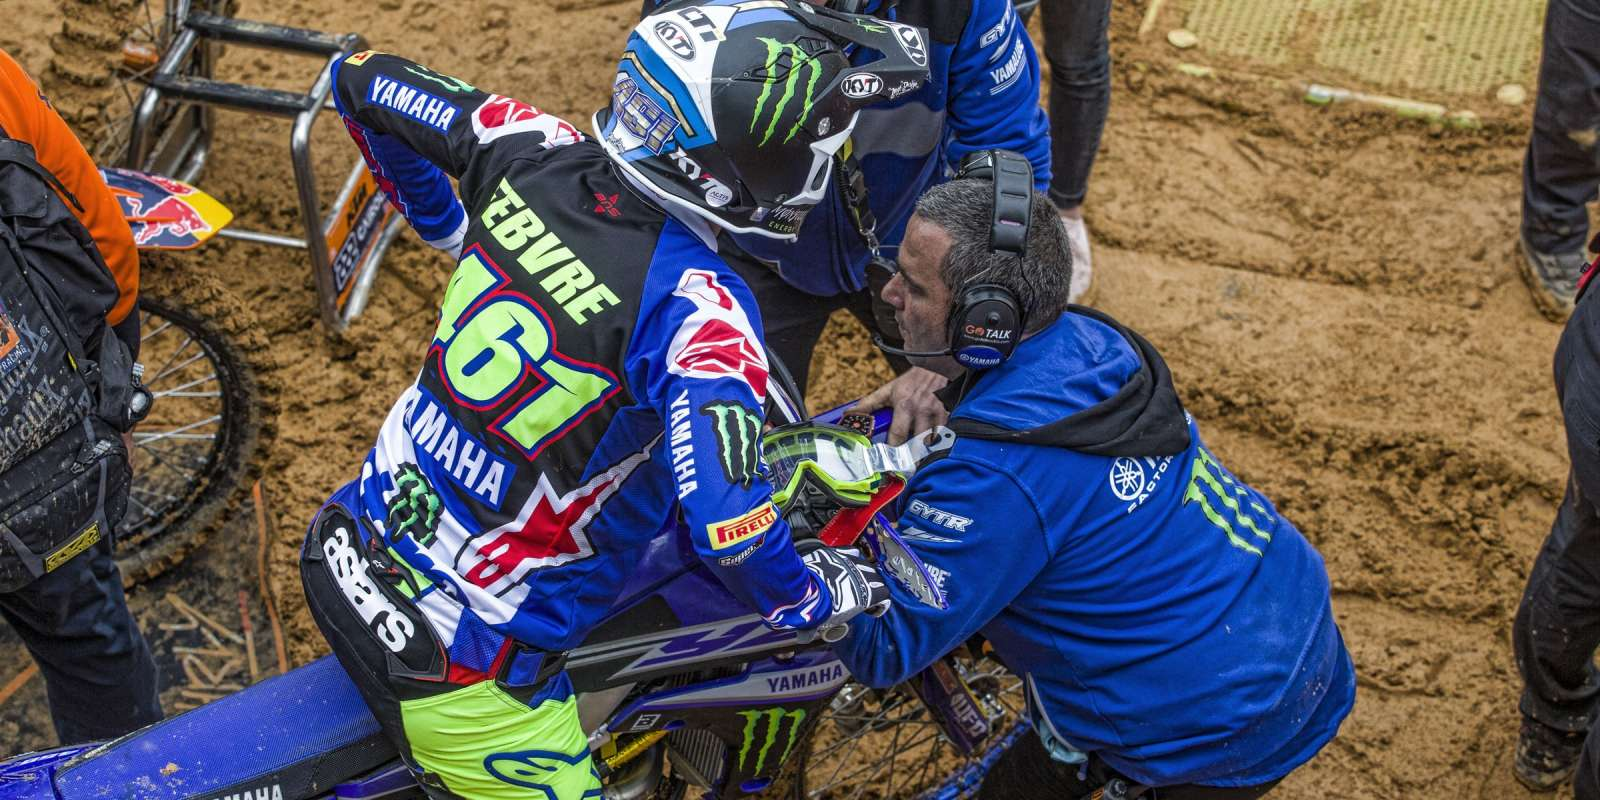 Romain Febvre at the 2018 Grand Prix of Portugal